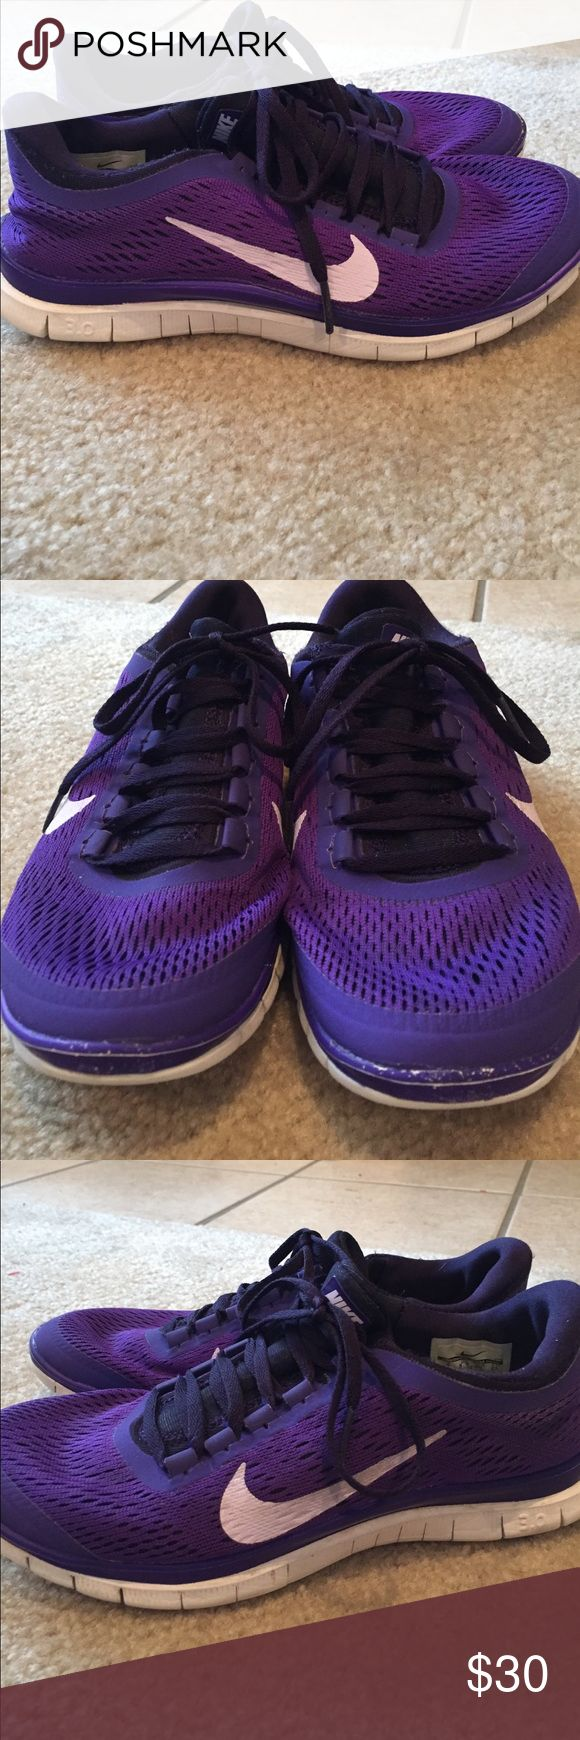 Nike Free 3.0 size 8 Nike Free 3.0 size 8. Good condition Nike Shoes Sneakers